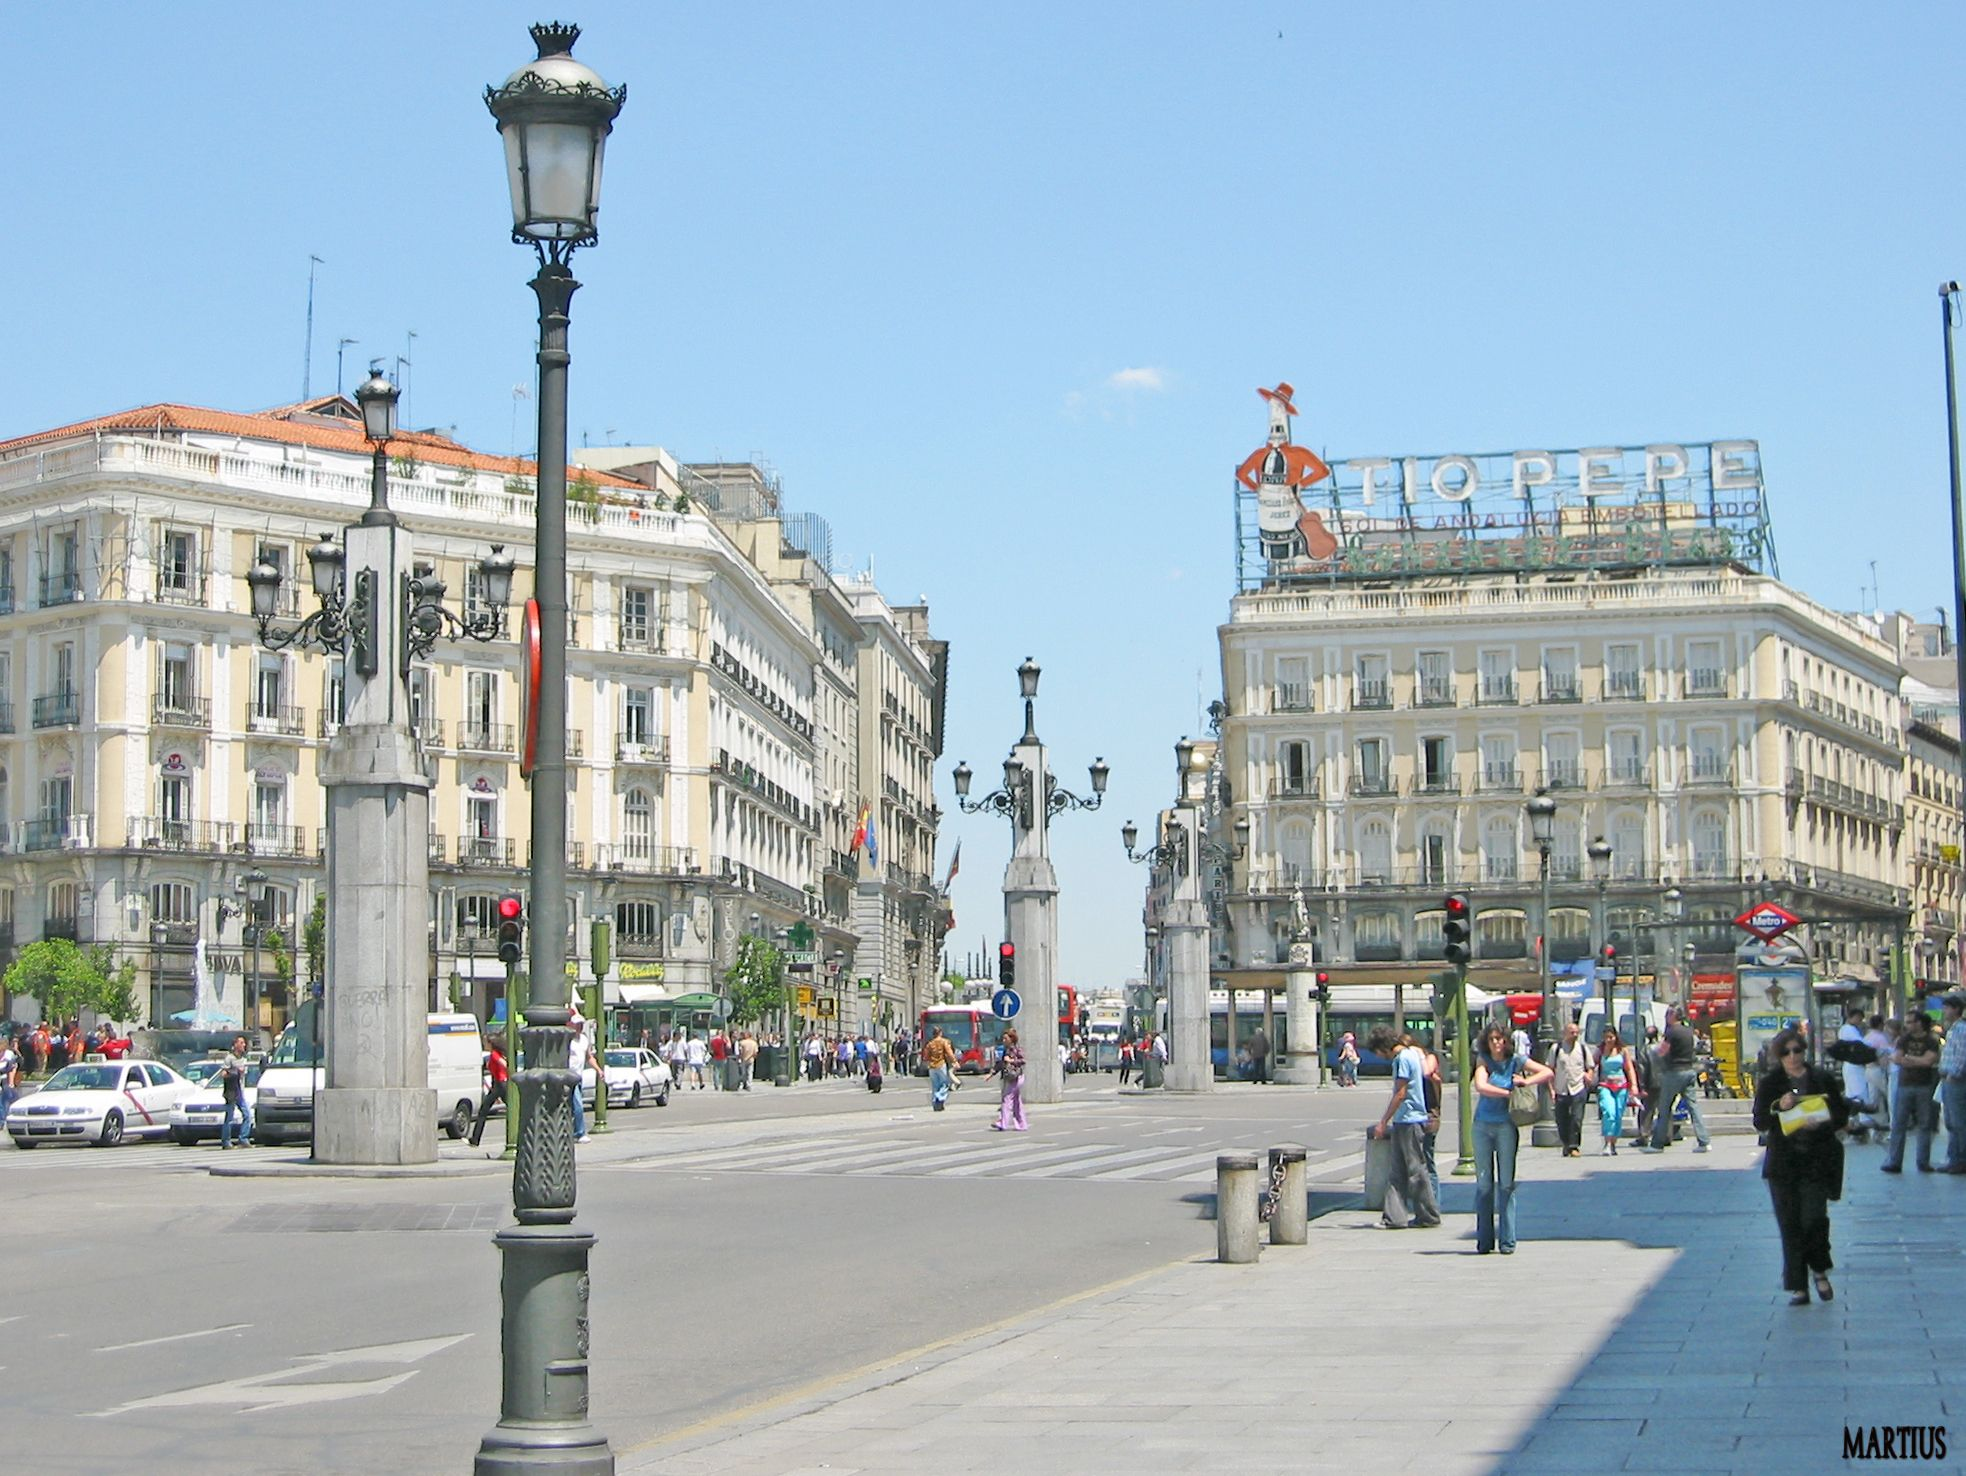 Puerta Del Sol Madrid A Suggested Walk From Puerta Del Sol To The Royal Palace Is A Must For All Visiting Madrid Lugares Para Visitar Turismo España